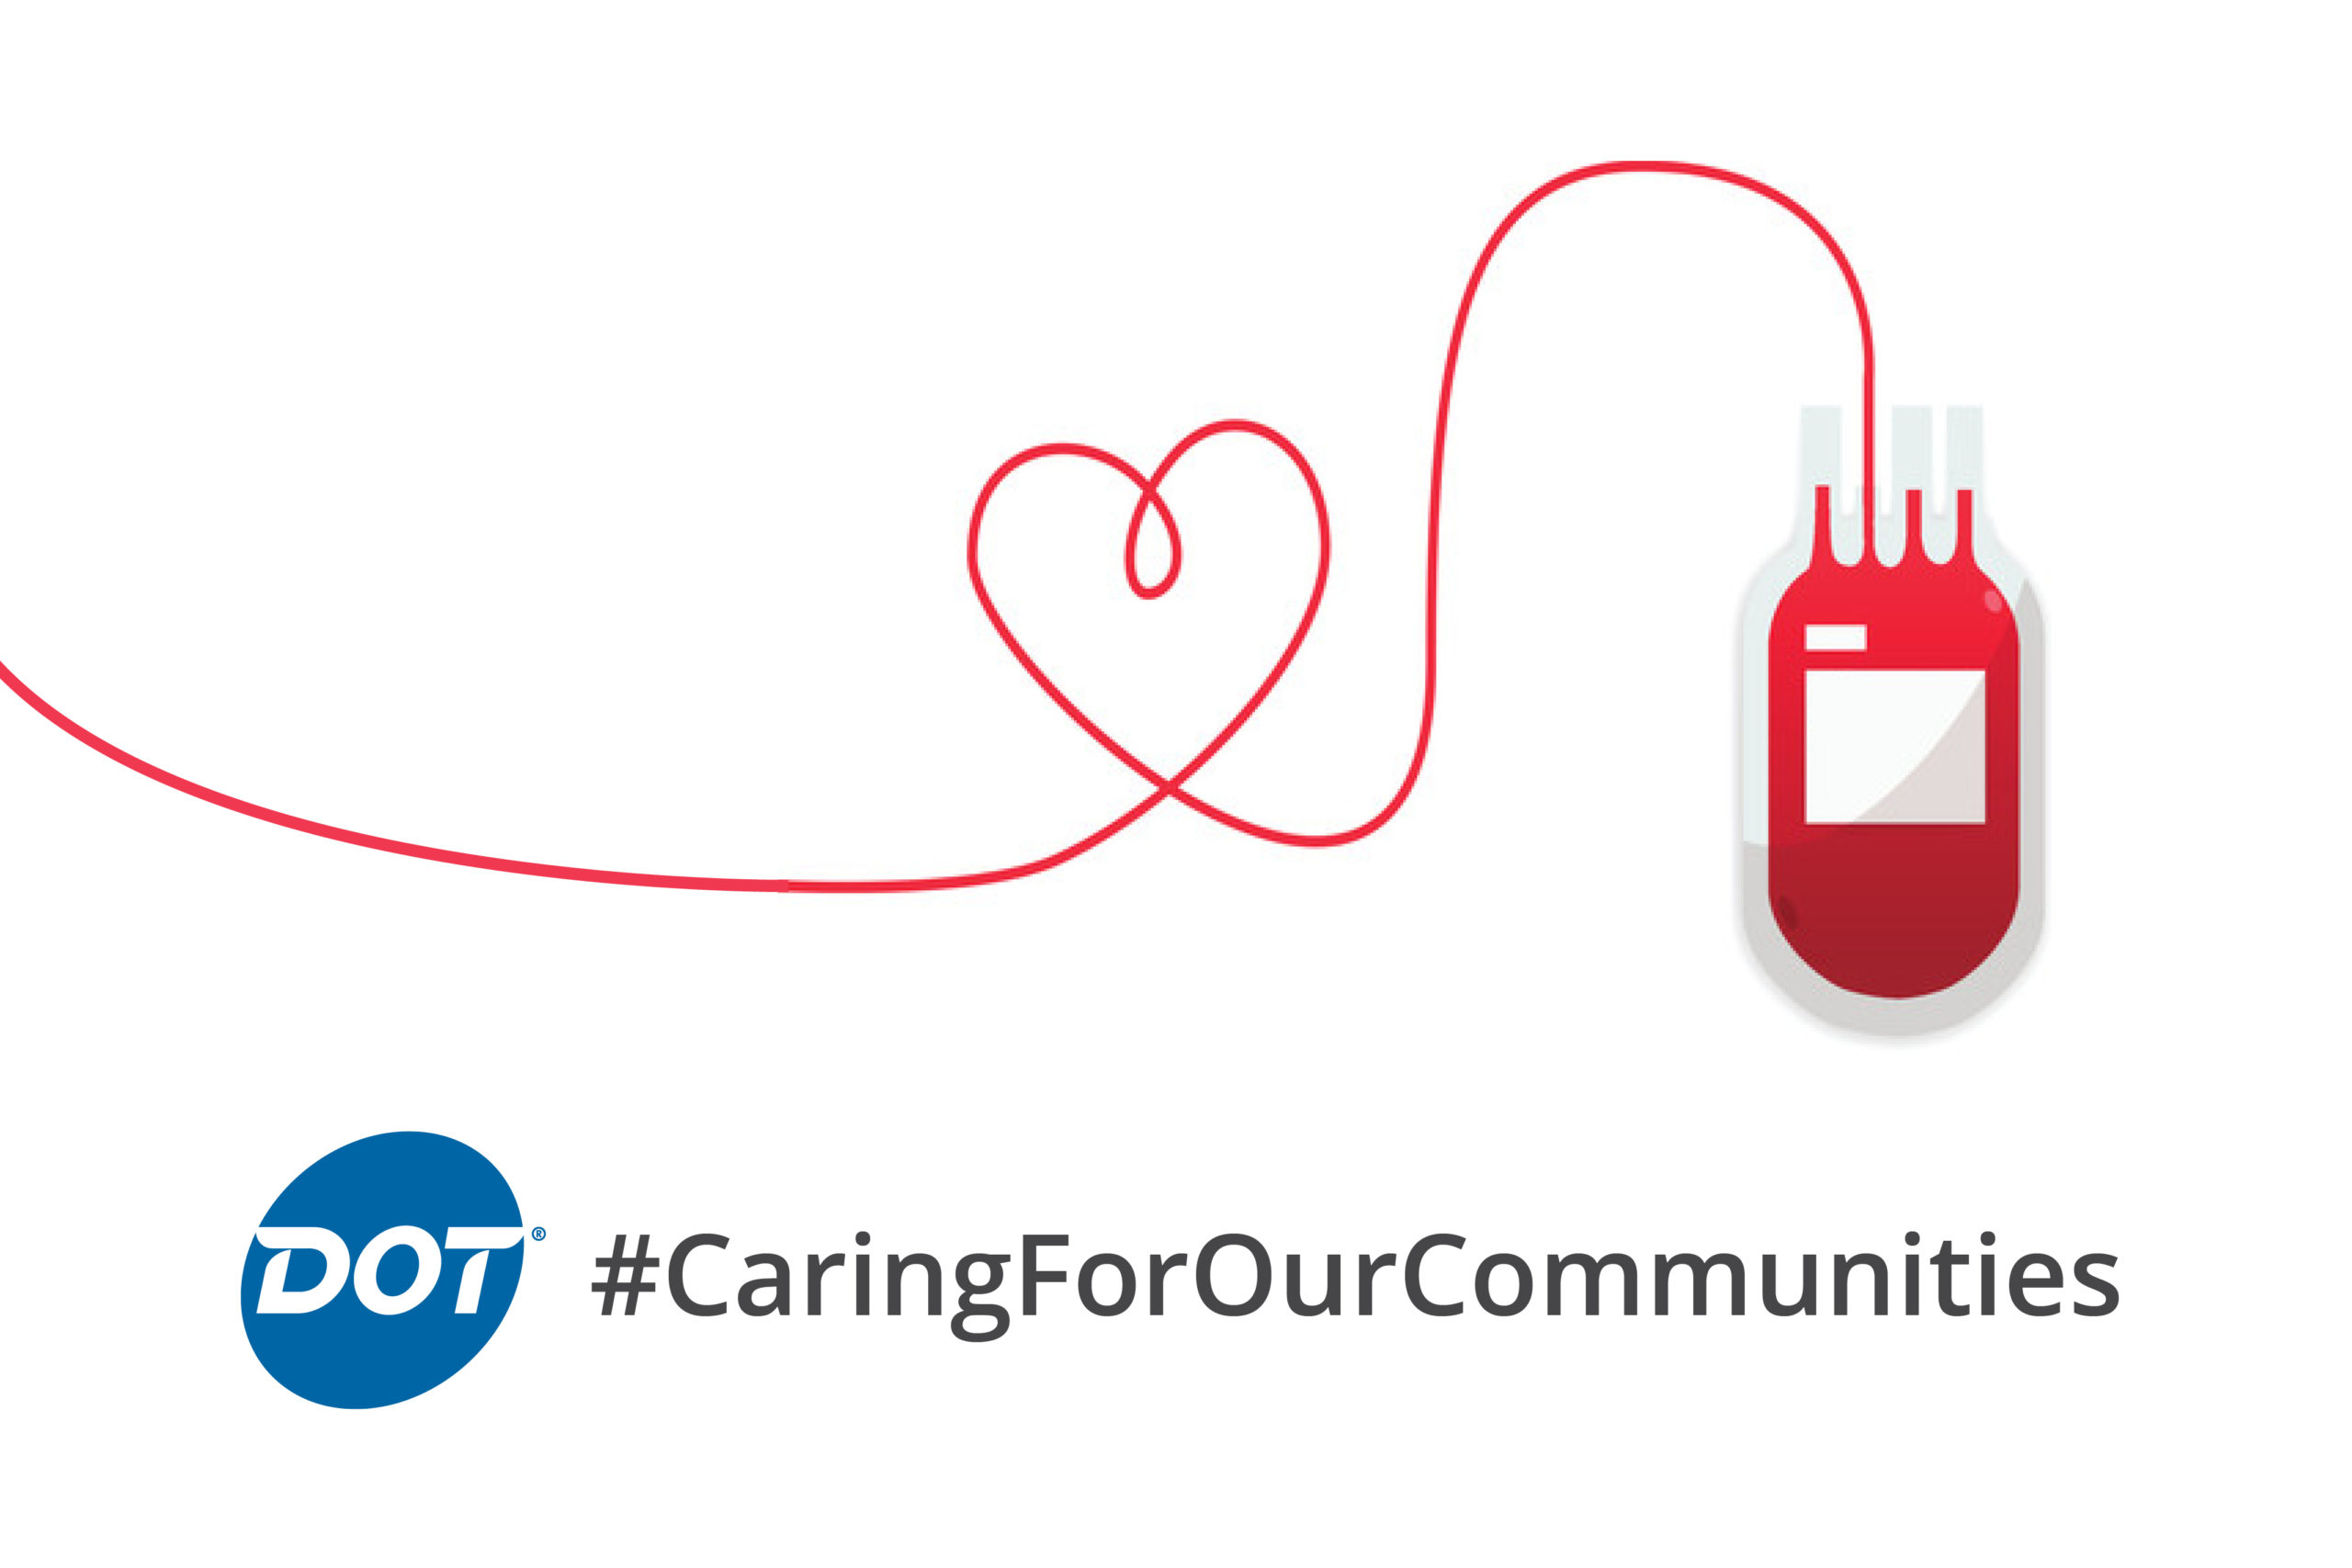 #caring for our communities